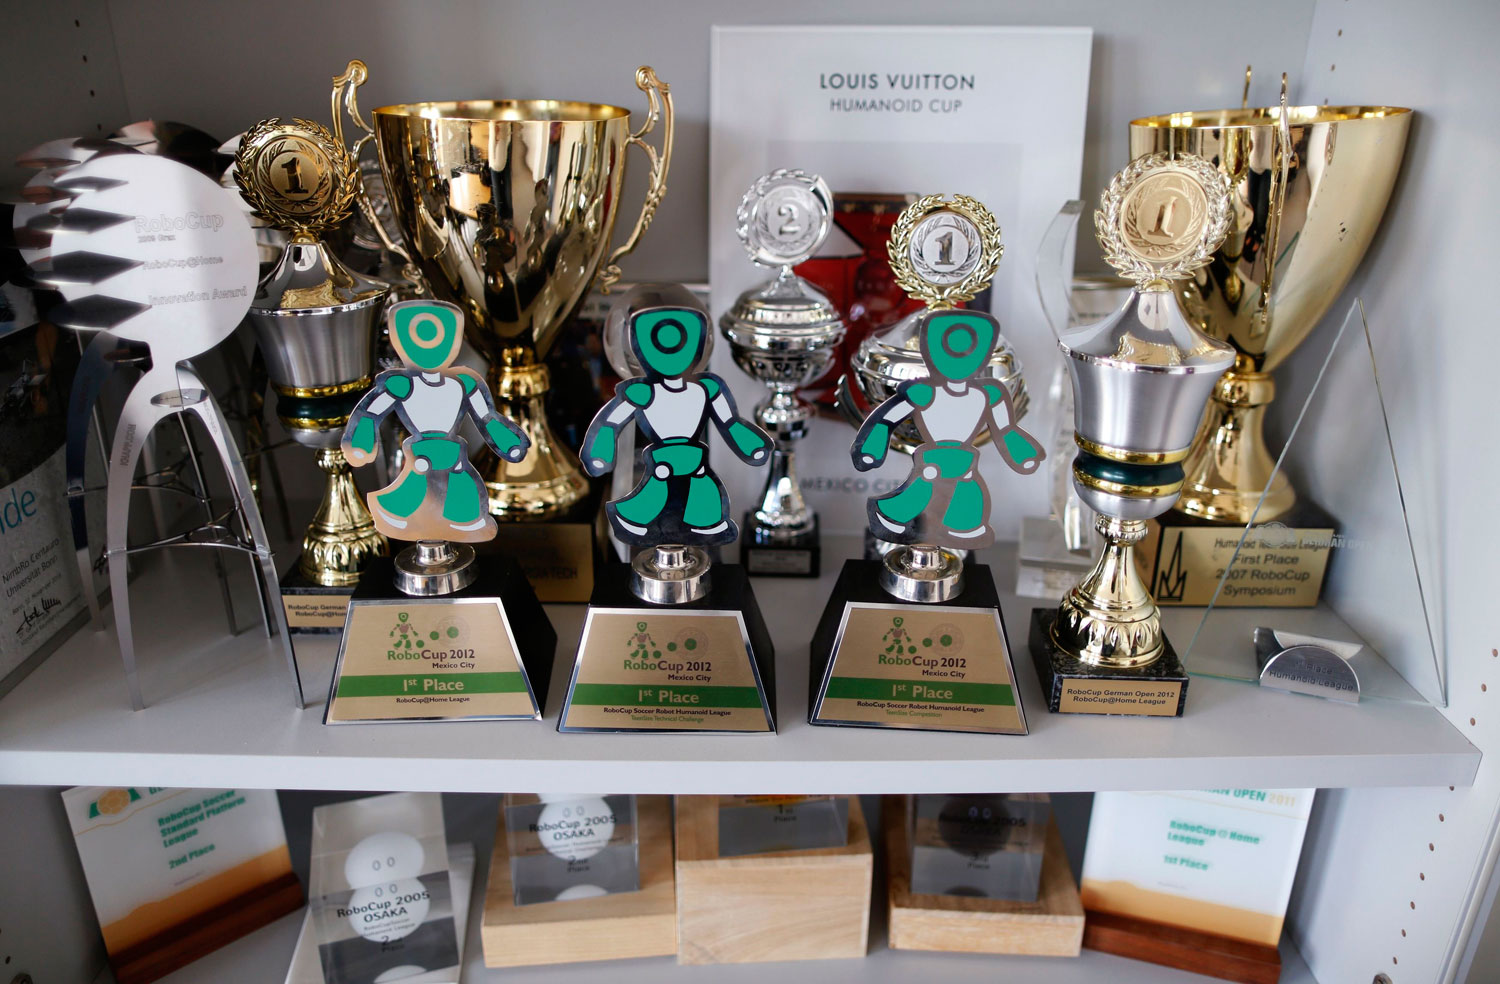 Trophies won by humanoid robots at competitions are seen during a photo opportunity at the Institute for Computer Science at the University of Bonn in Bonn, Germany on July 3, 2014.